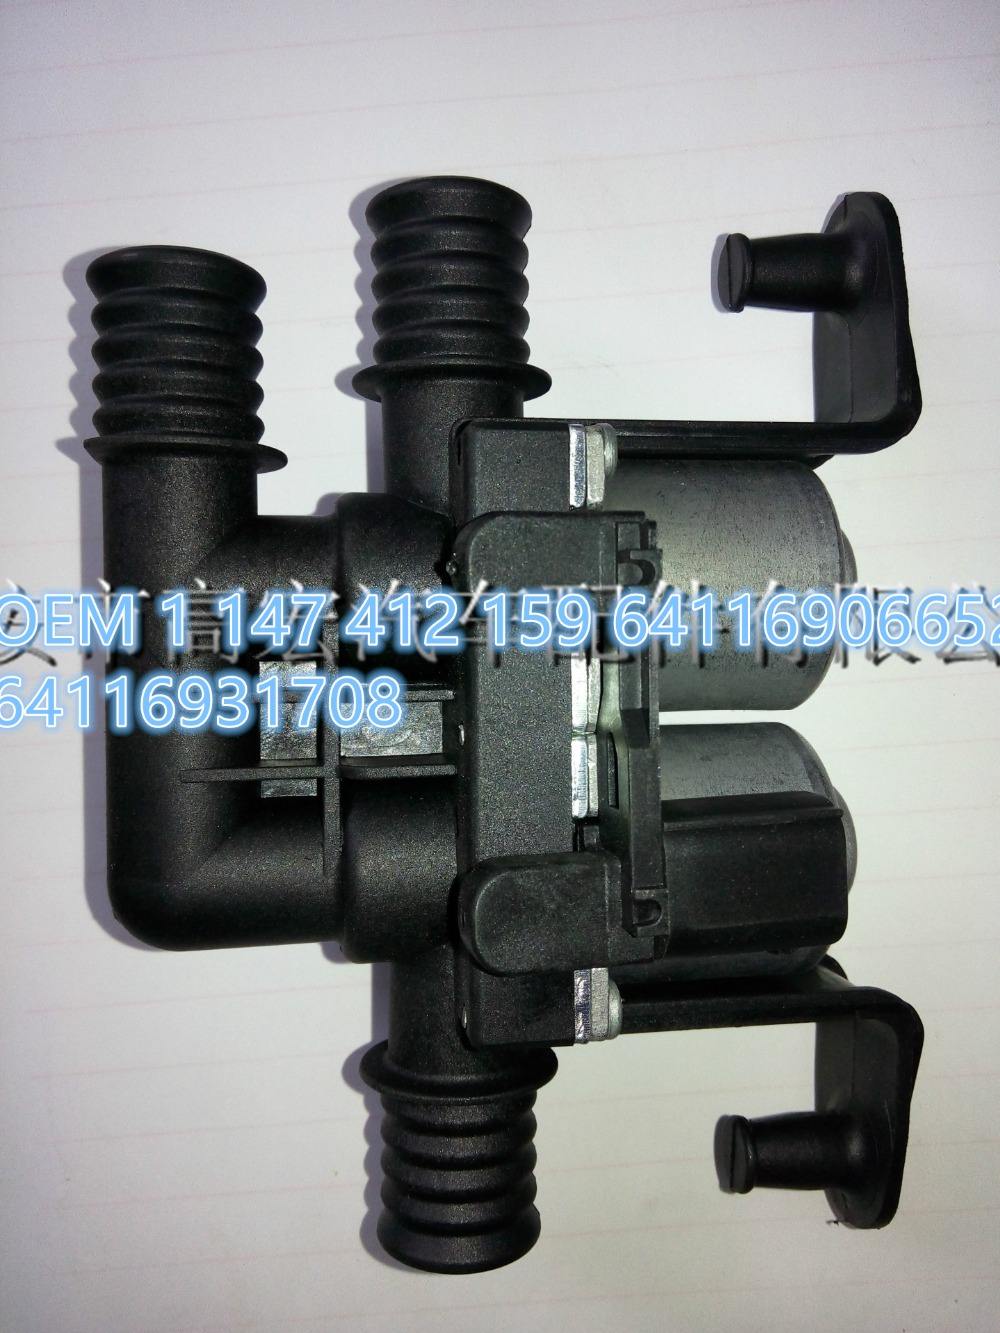 Free shipping wholesale new Heater Control Valve for BMW E60 E63 E64 E65 M5 525i 528i 535i 545i 745i 750i 64116906652